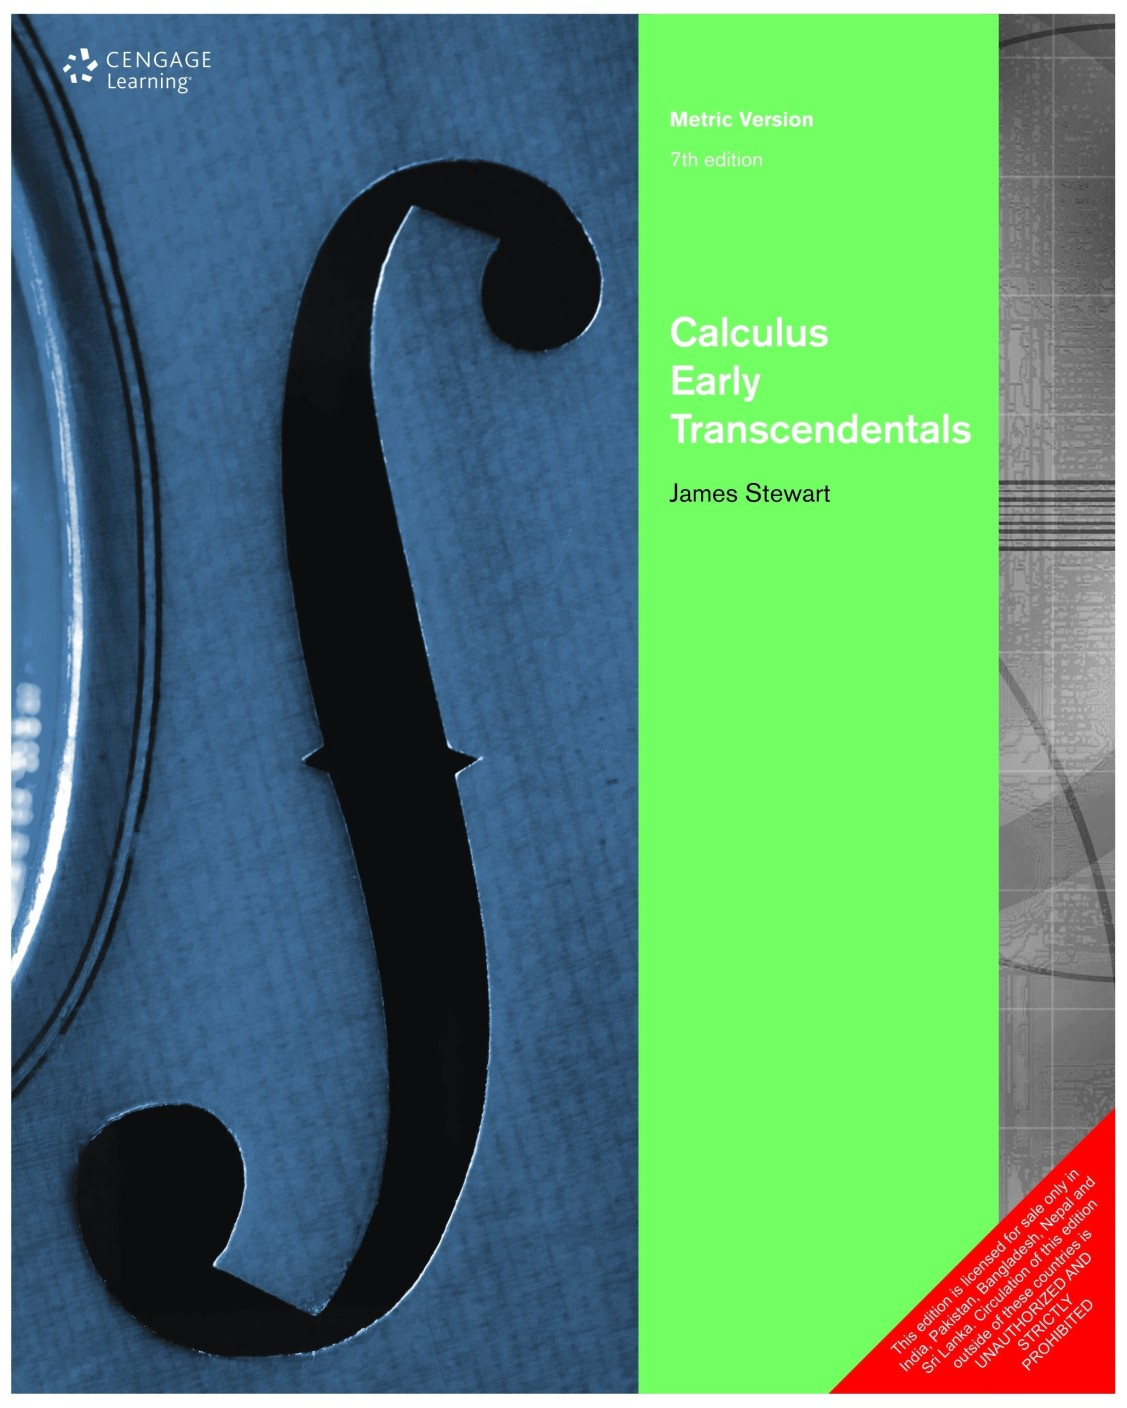 stewart calculus early transcendentals 7th edition solutions manual pdf download